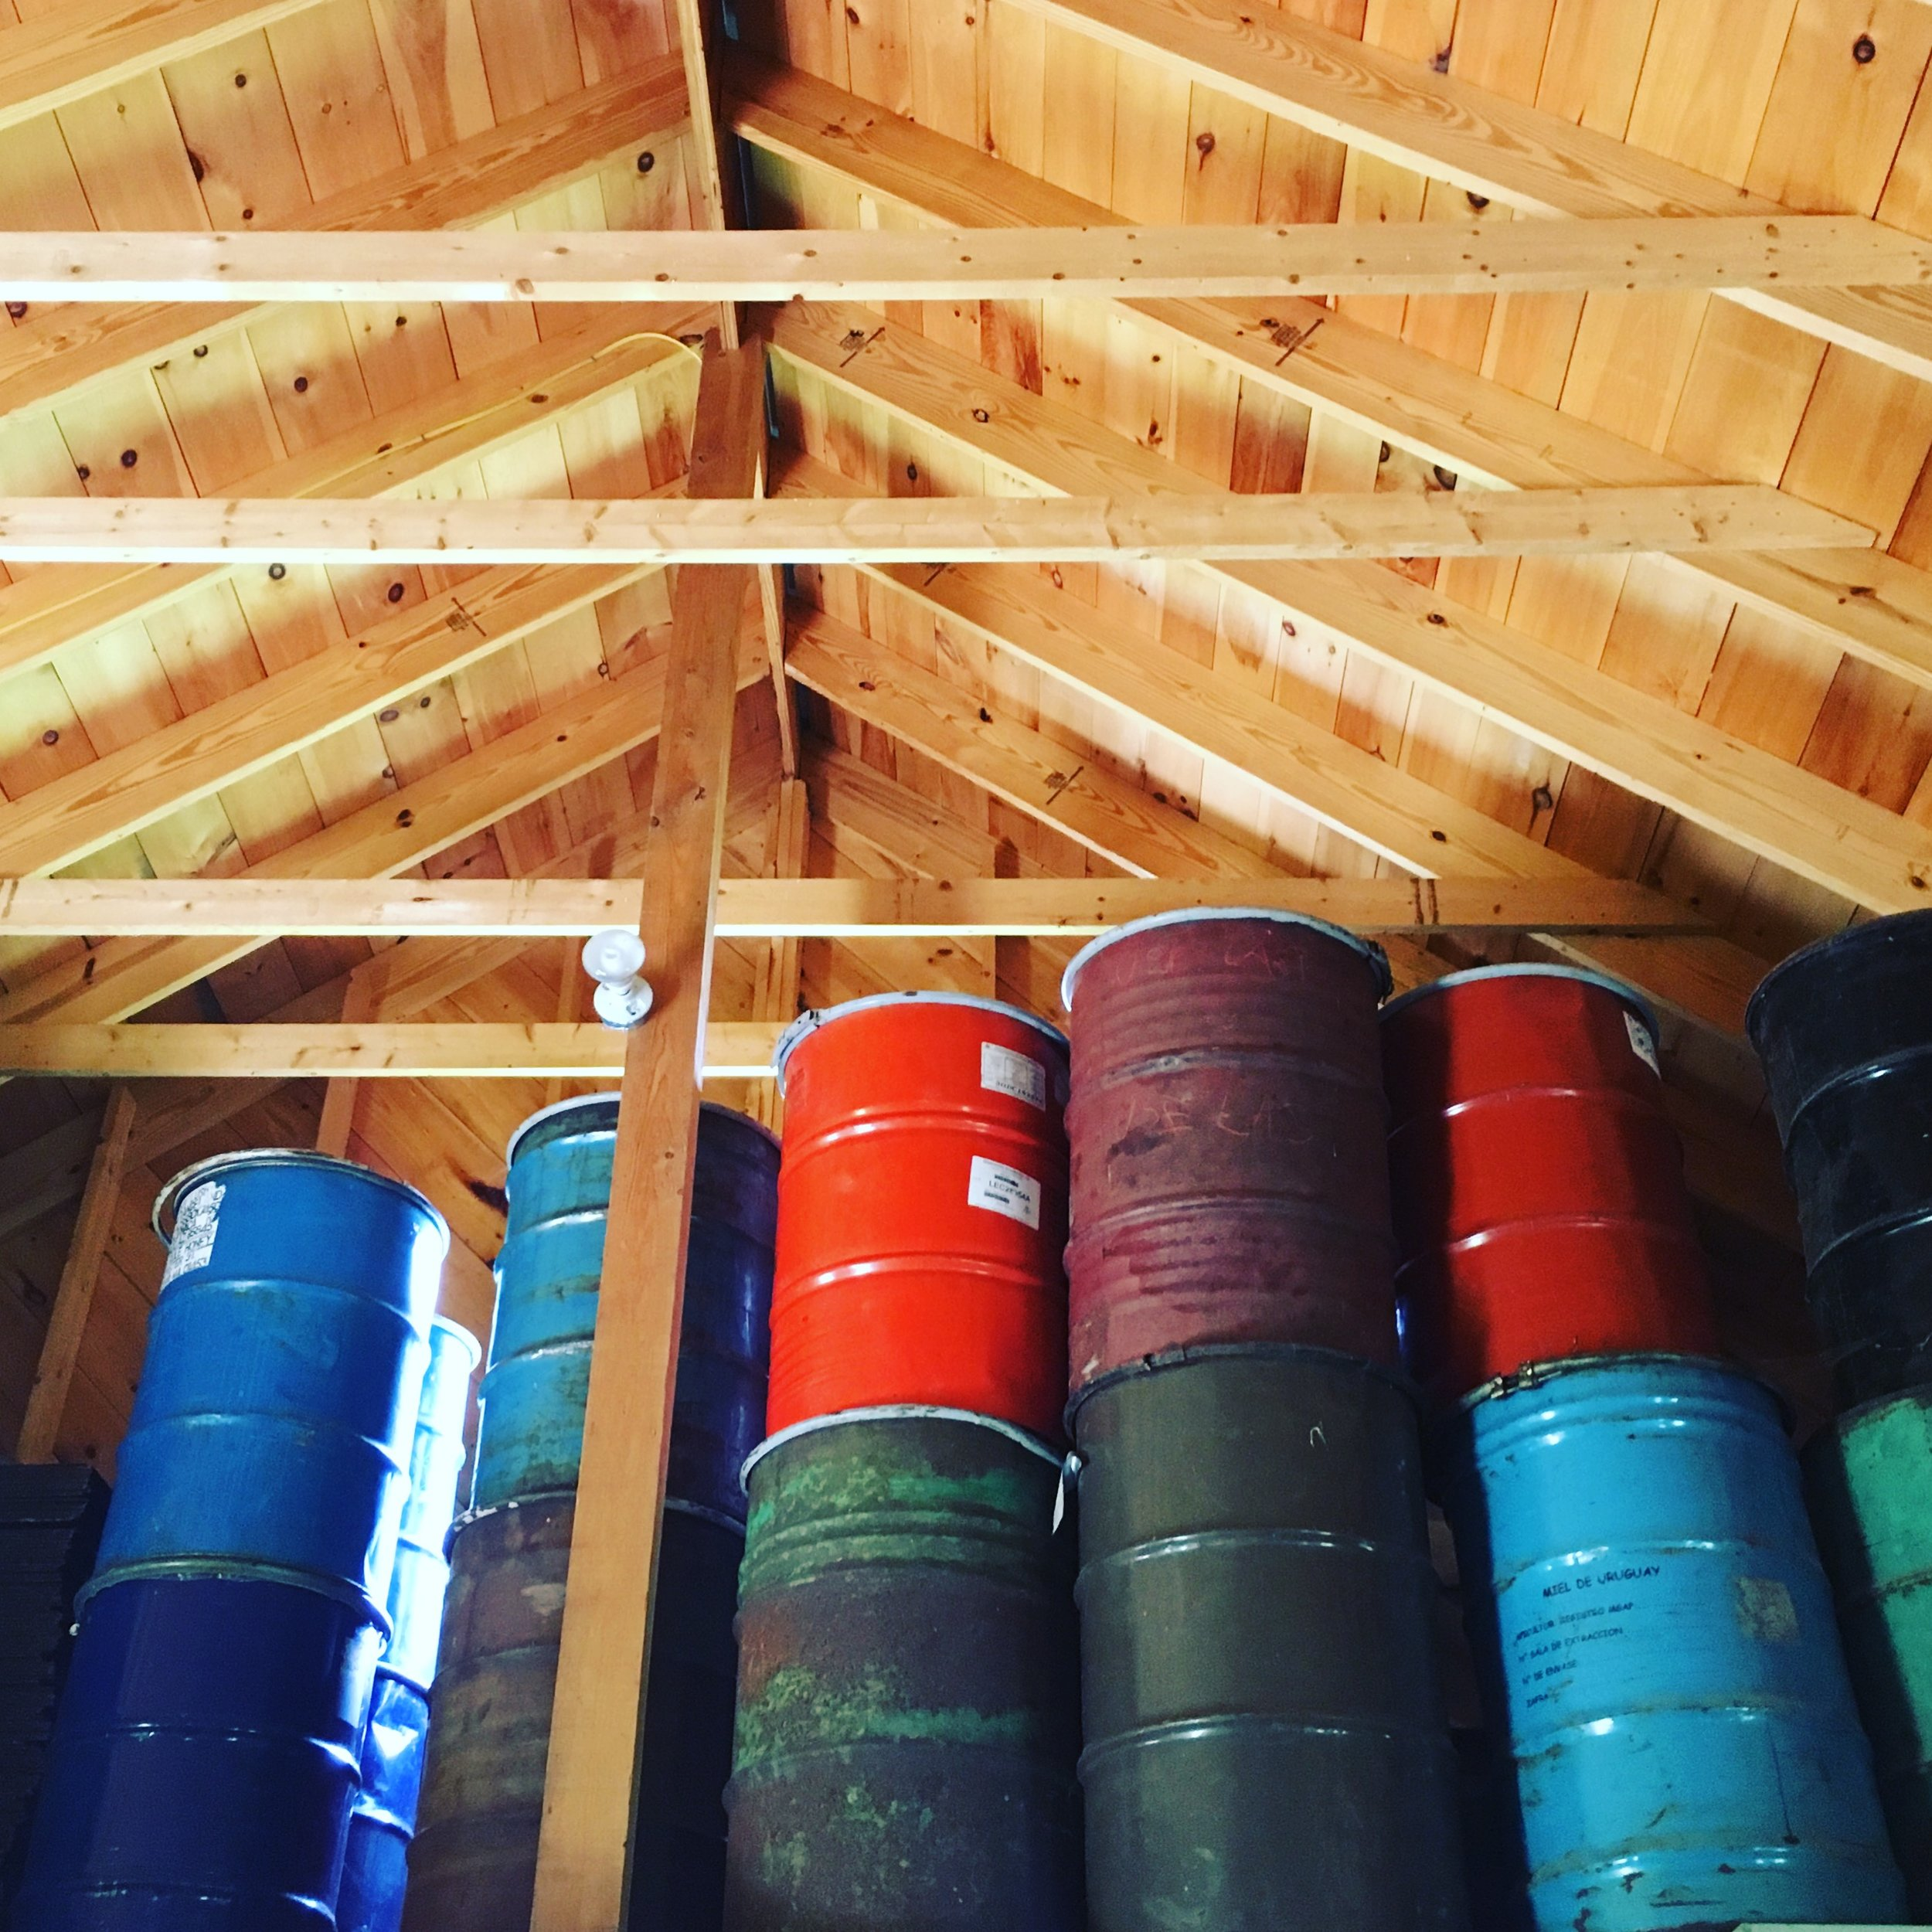 Over-wintering empty barrels in the rafters.